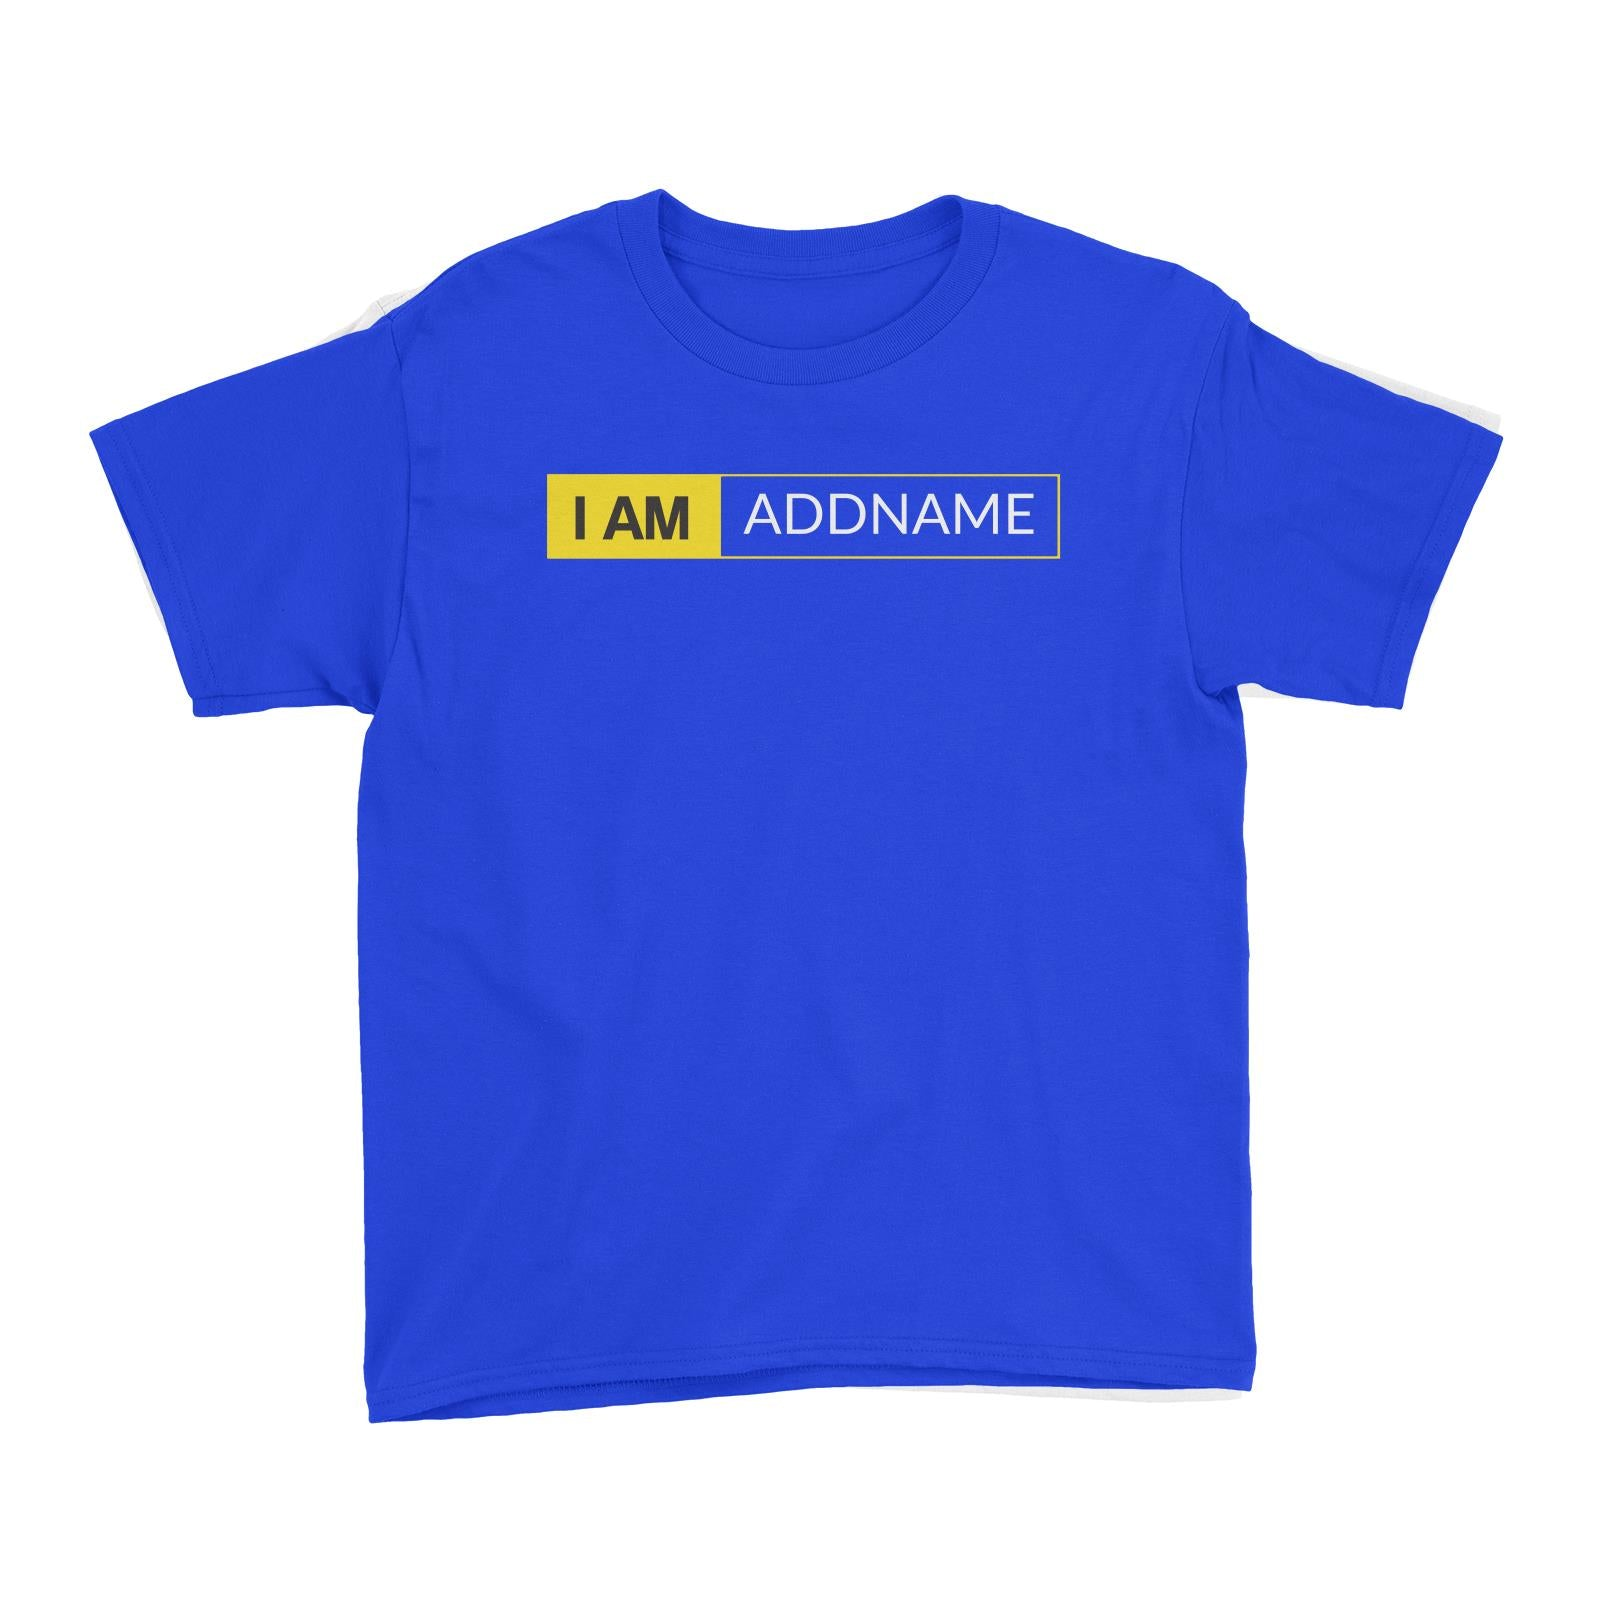 I AM Addname in Yellow Box Kid's T-Shirt Basic Nikon Matching Family Personalizable Designs